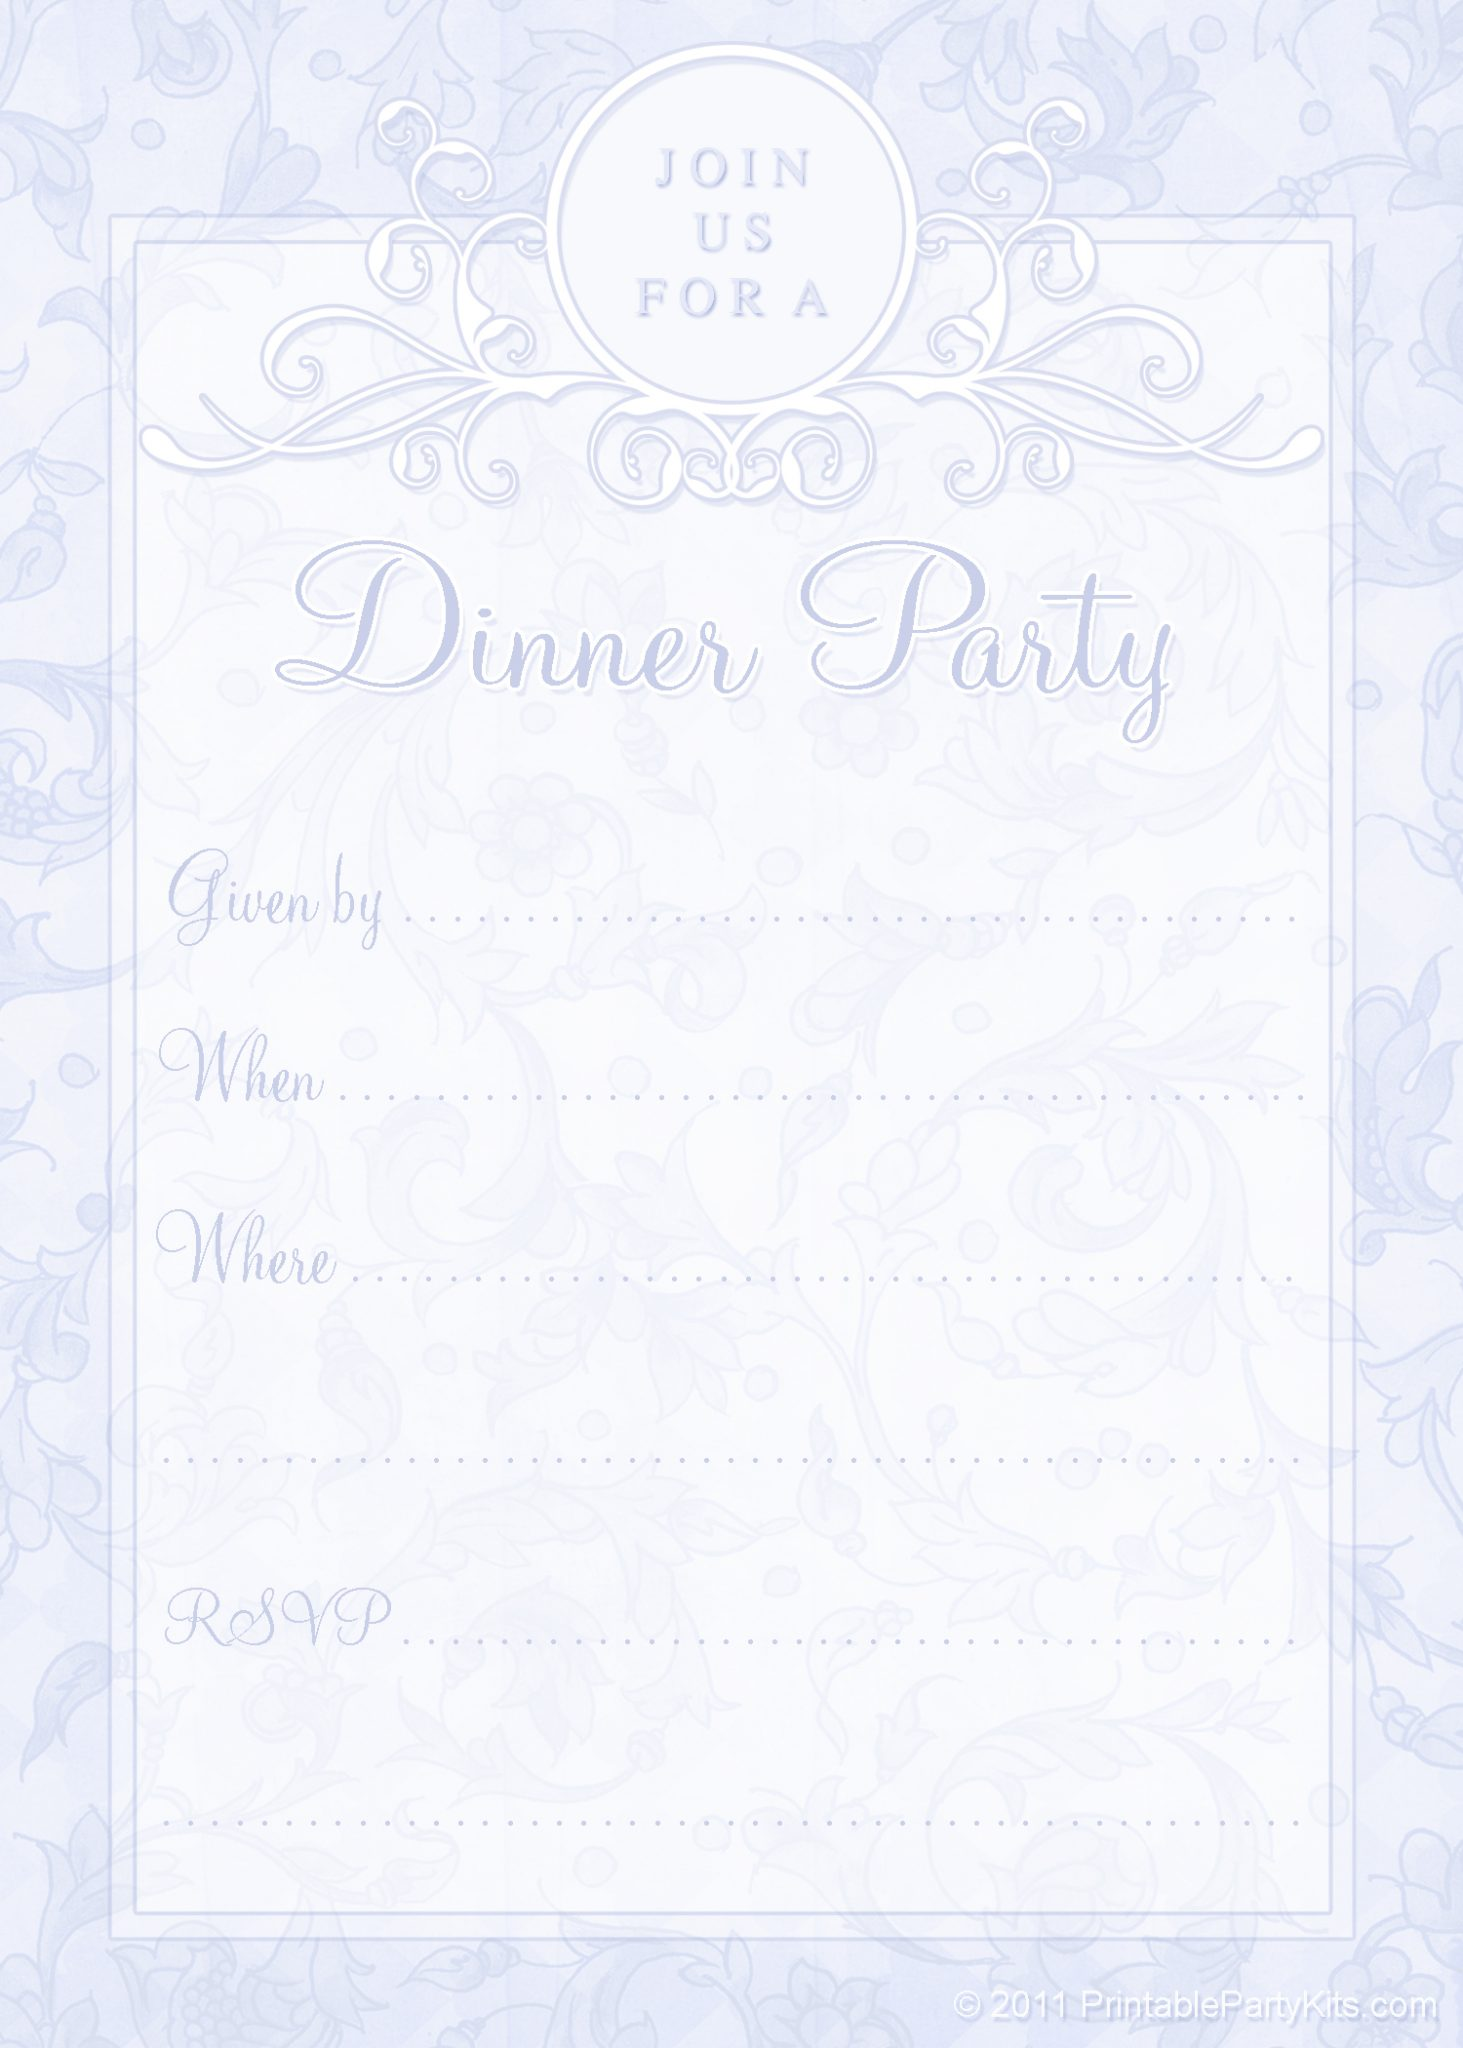 free printable dinner party invites printable party kits. Black Bedroom Furniture Sets. Home Design Ideas